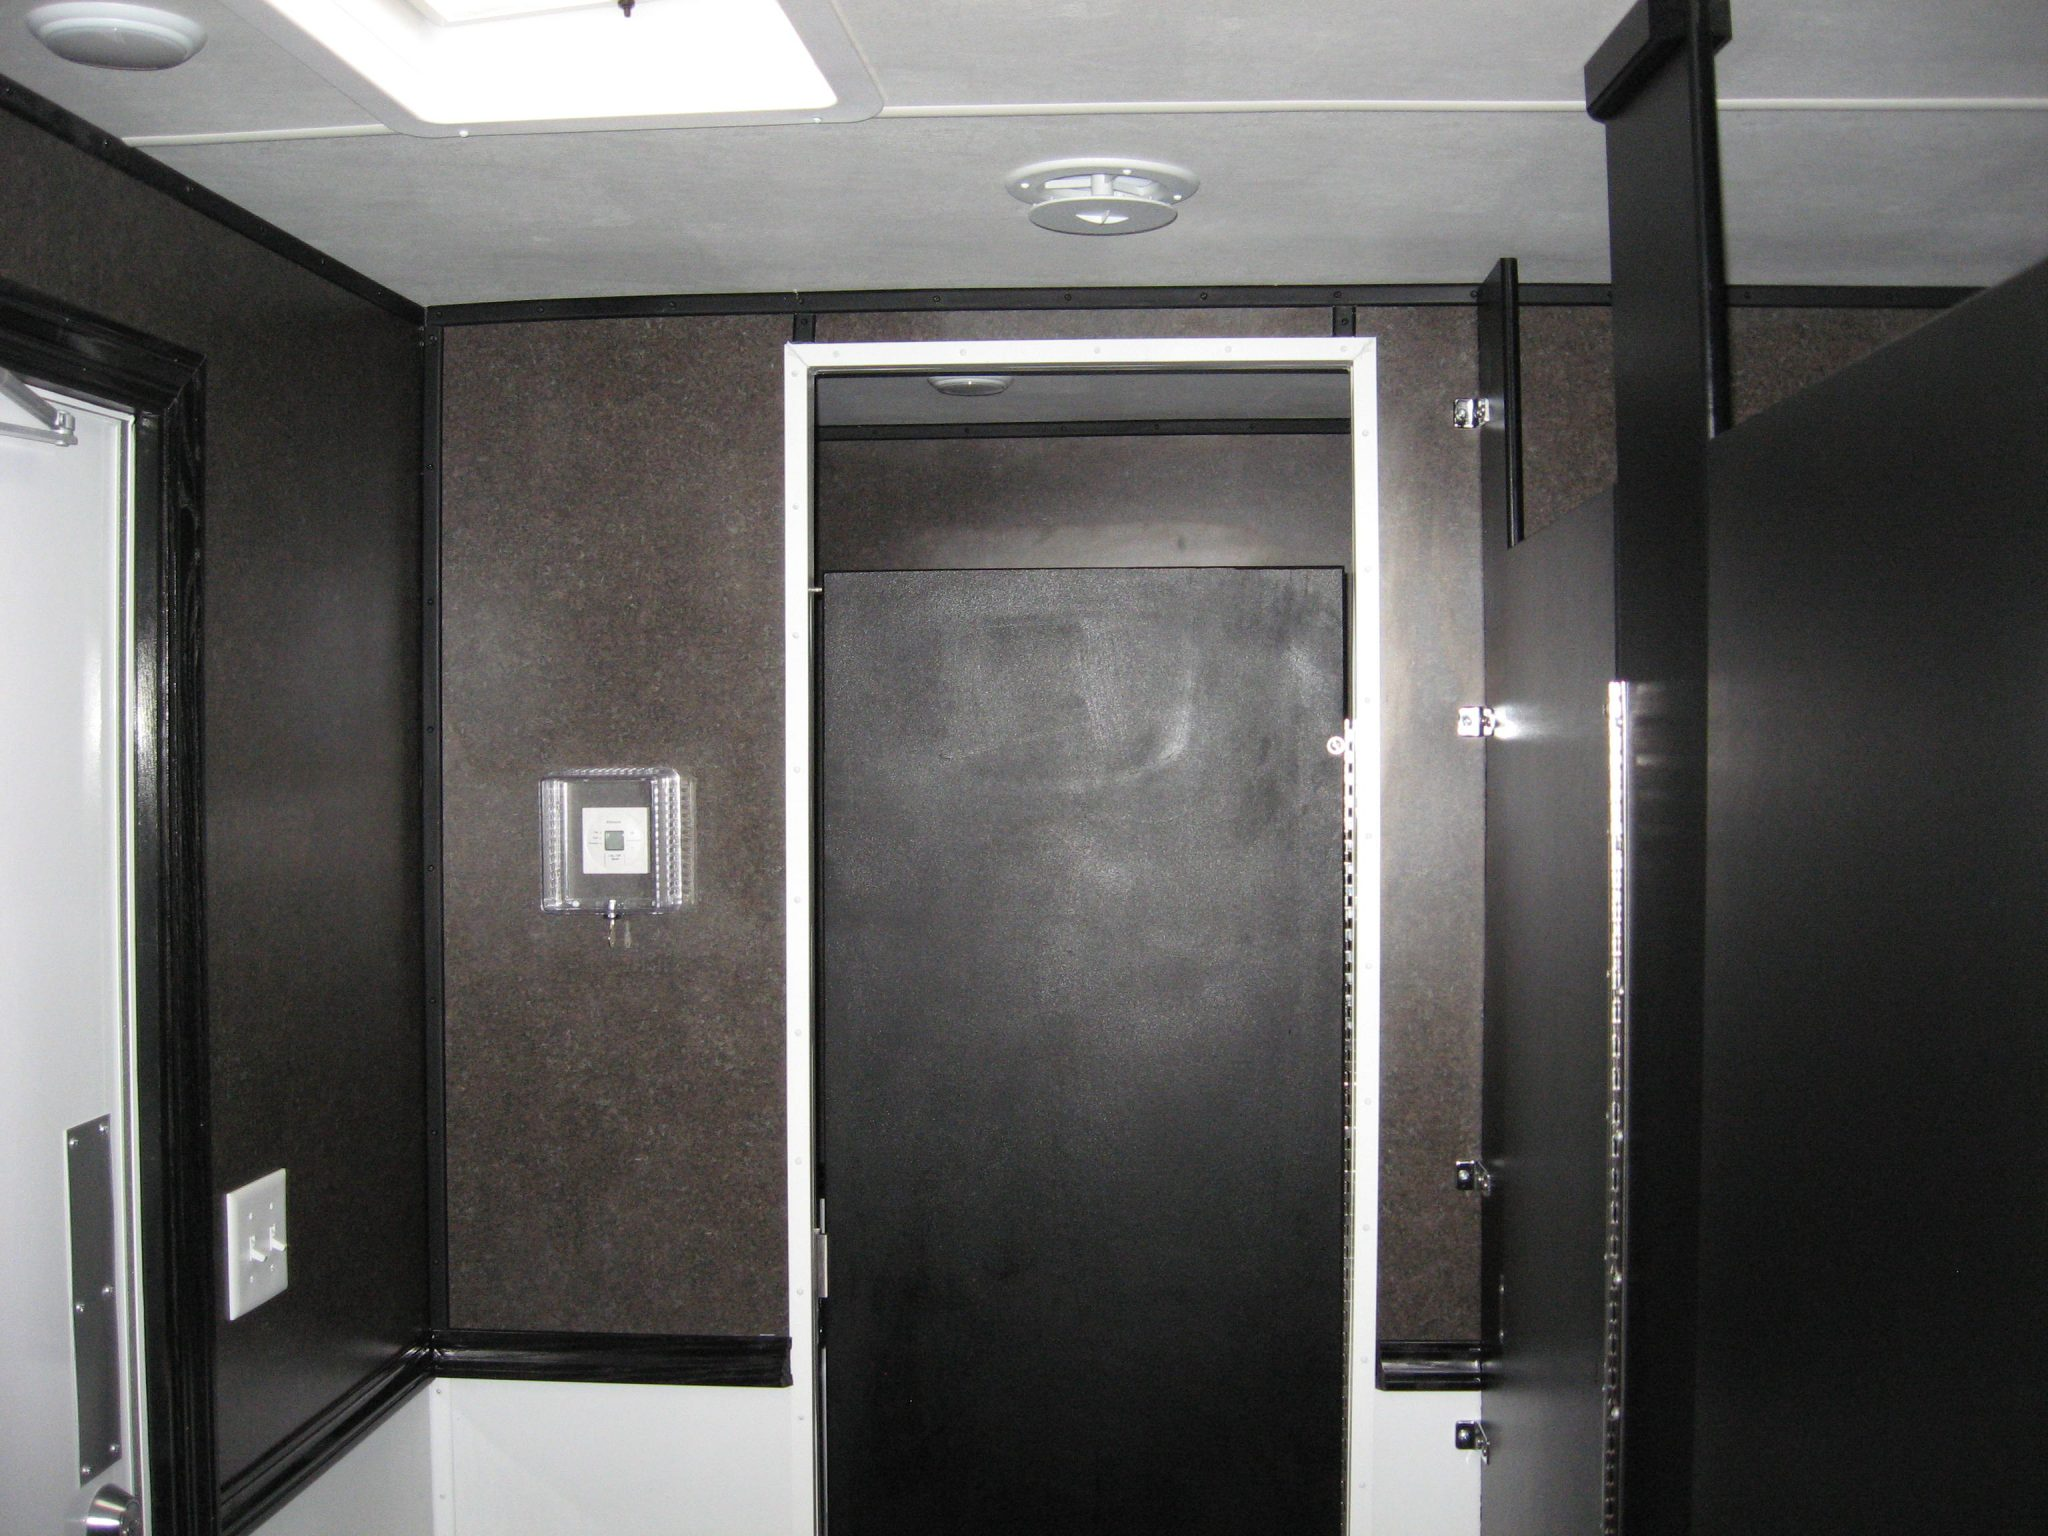 This bathroom trailer has ample space to move people in and out.